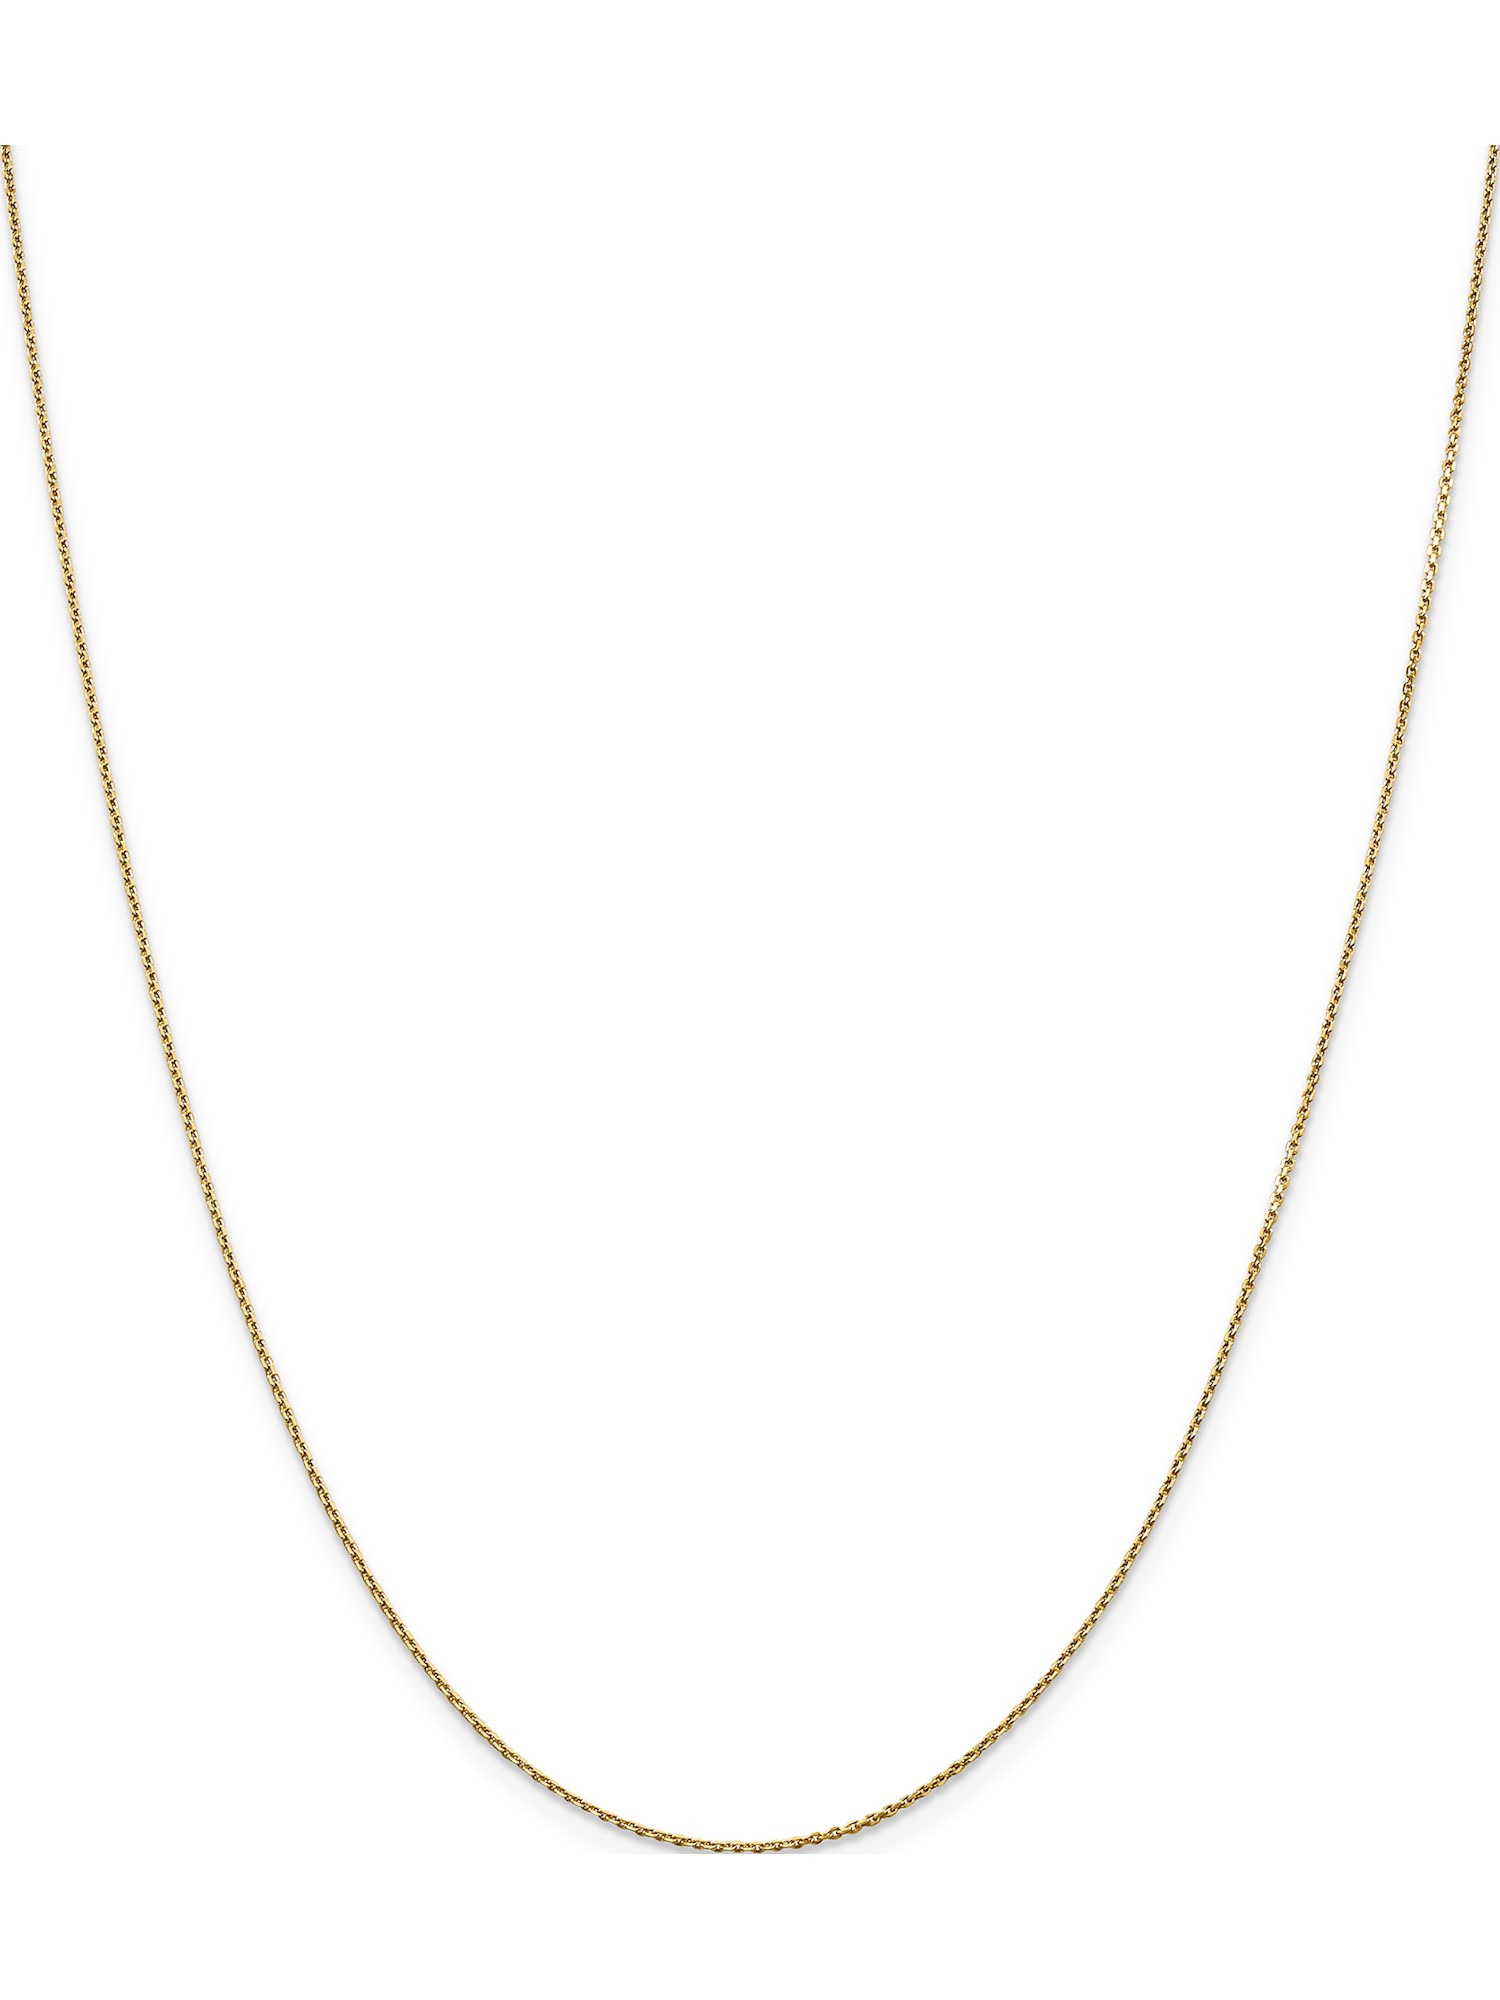 Beautiful Yellow gold 14K 14k .90mm D//C Cable Chain